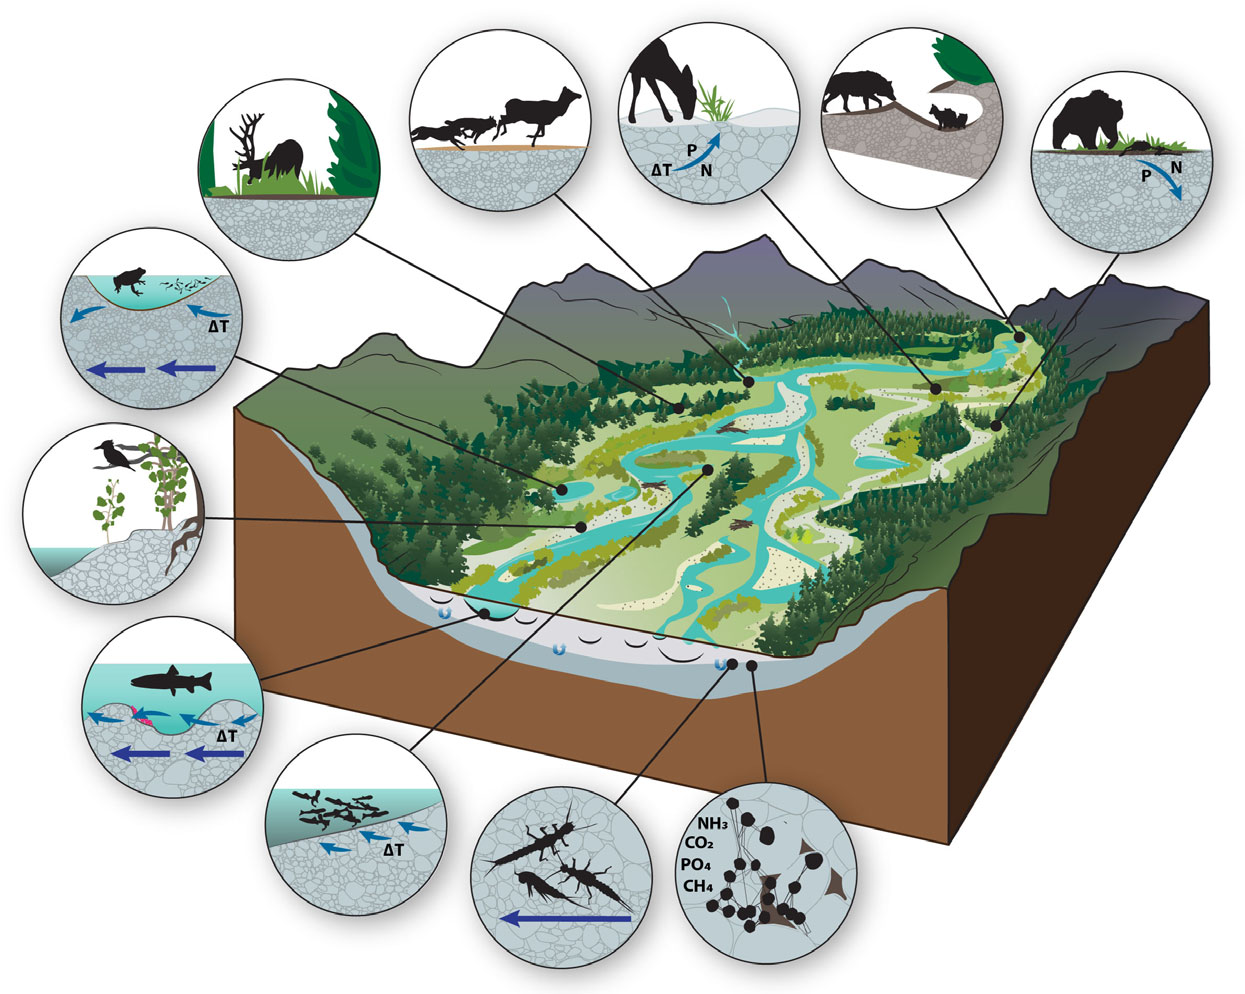 Nature Gravelbed Rivers Most Important Feature In Mountainous - Importance of rivers